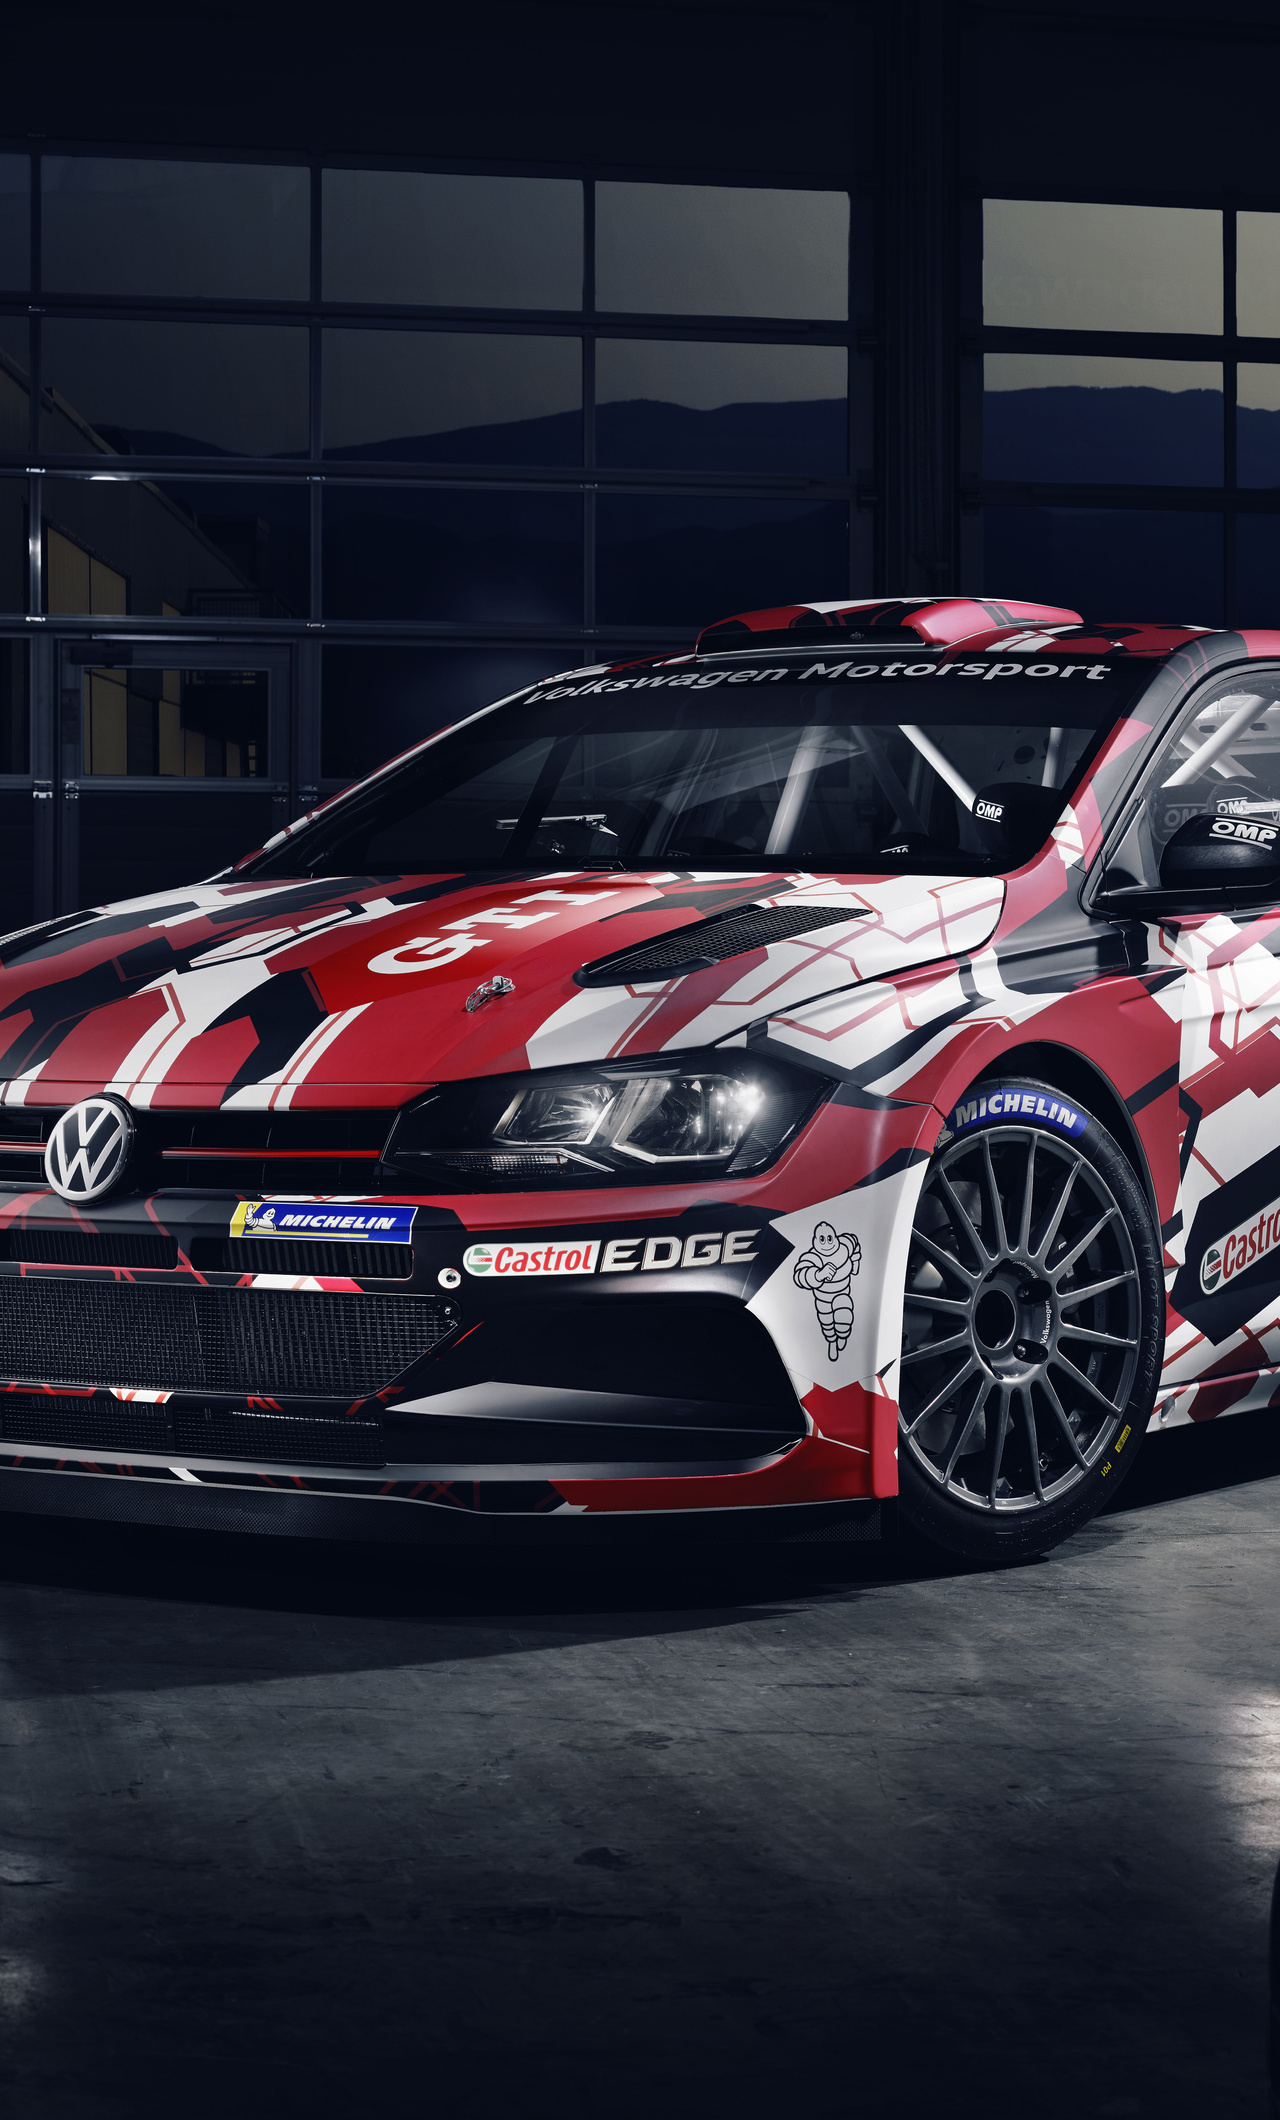 1280x2120 Vw Polo Gti R5 Iphone 6 Hd 4k Wallpapers Images Backgrounds Photos And Pictures